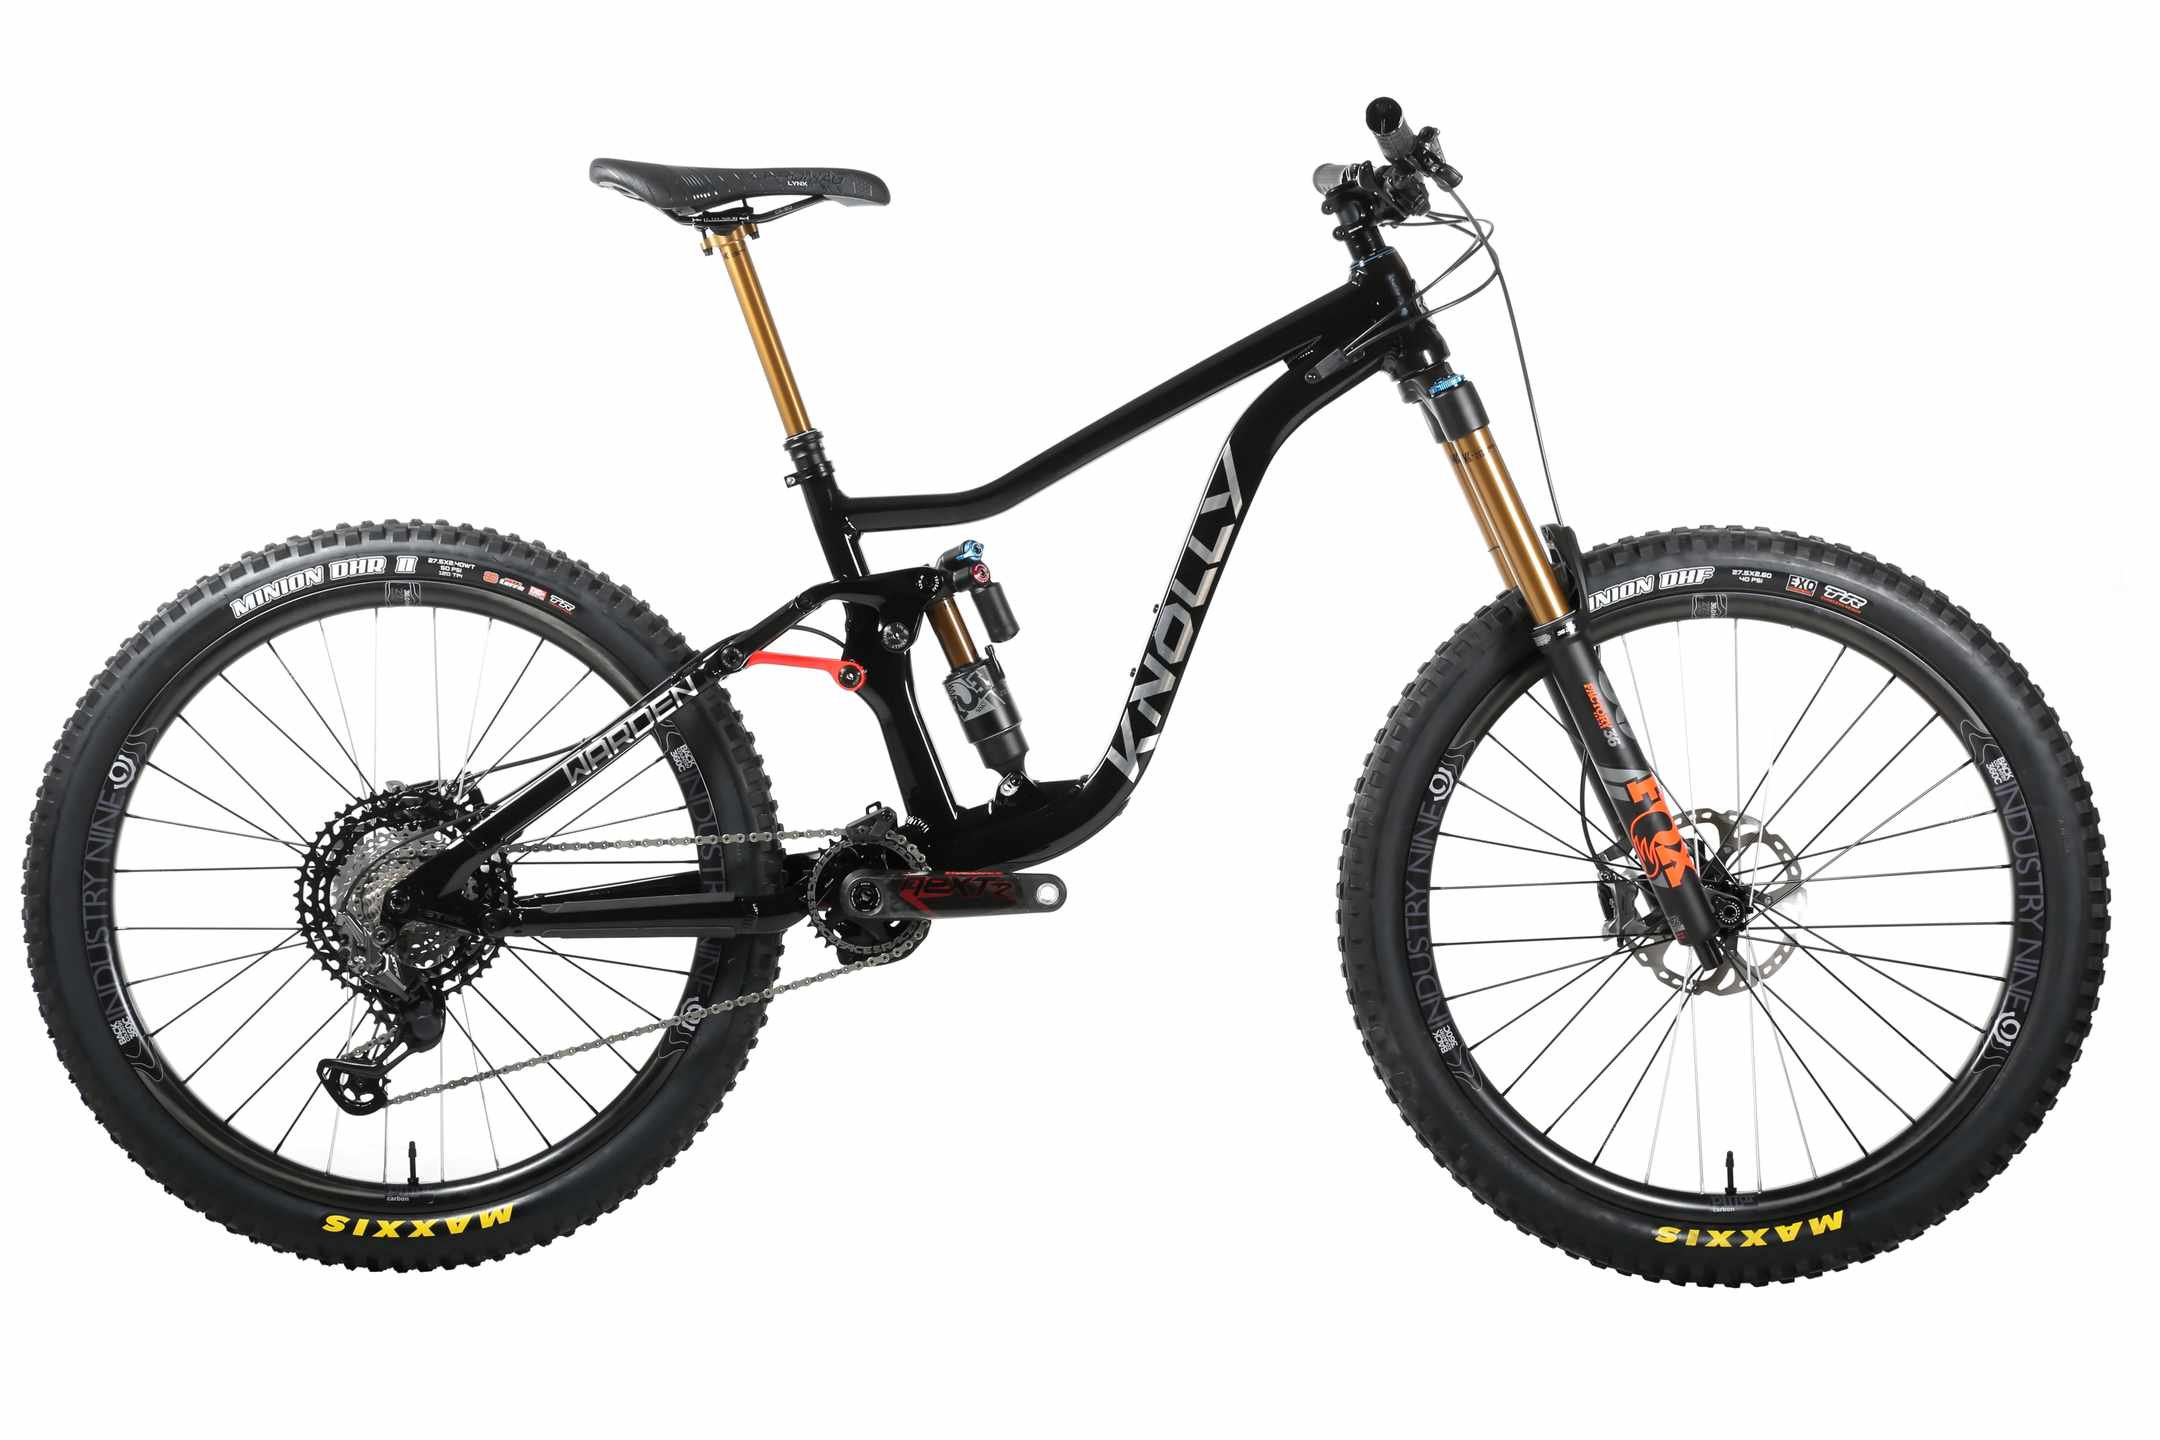 Knolly Launches The All Mountain Warden & Delirium For 2020